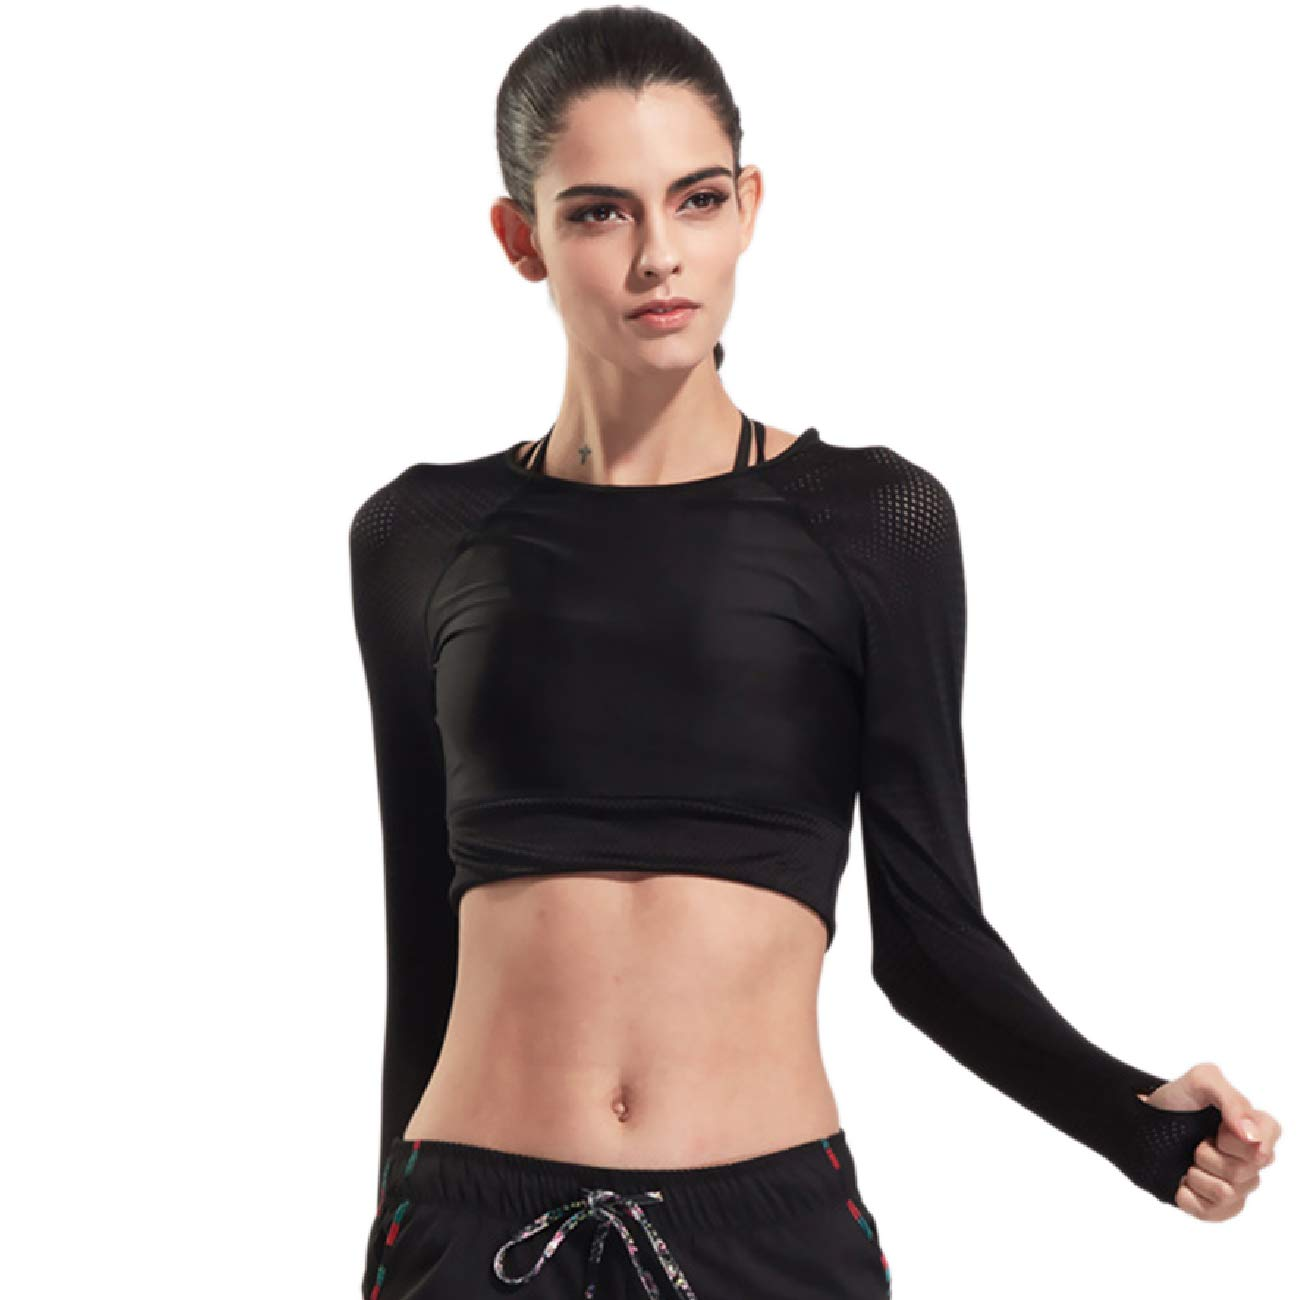 Active Wear Running Fitness Sports Training E Women's Clothing KYEYGWO Sports T Shirts for Woman